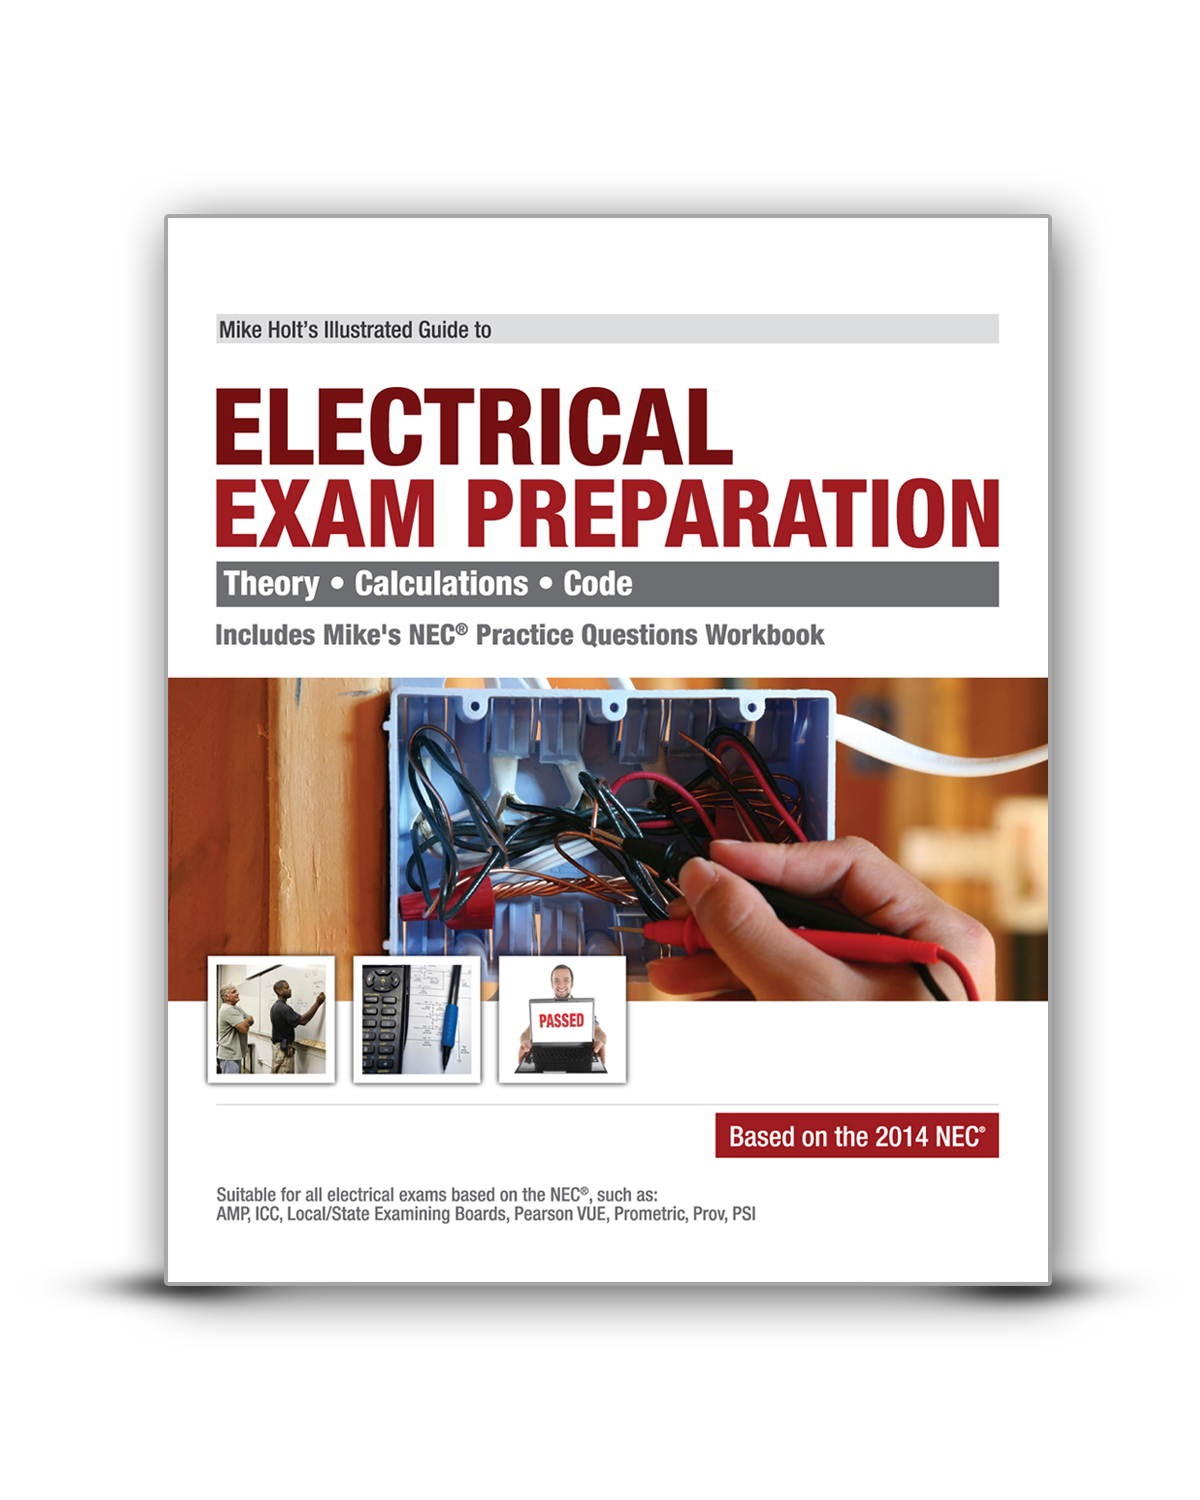 Mike holt exam preparation 2014 electrical exam preparation textbook mike holt s illustrated guide to electrical exam preparation 2014 edition 14exb xflitez Image collections